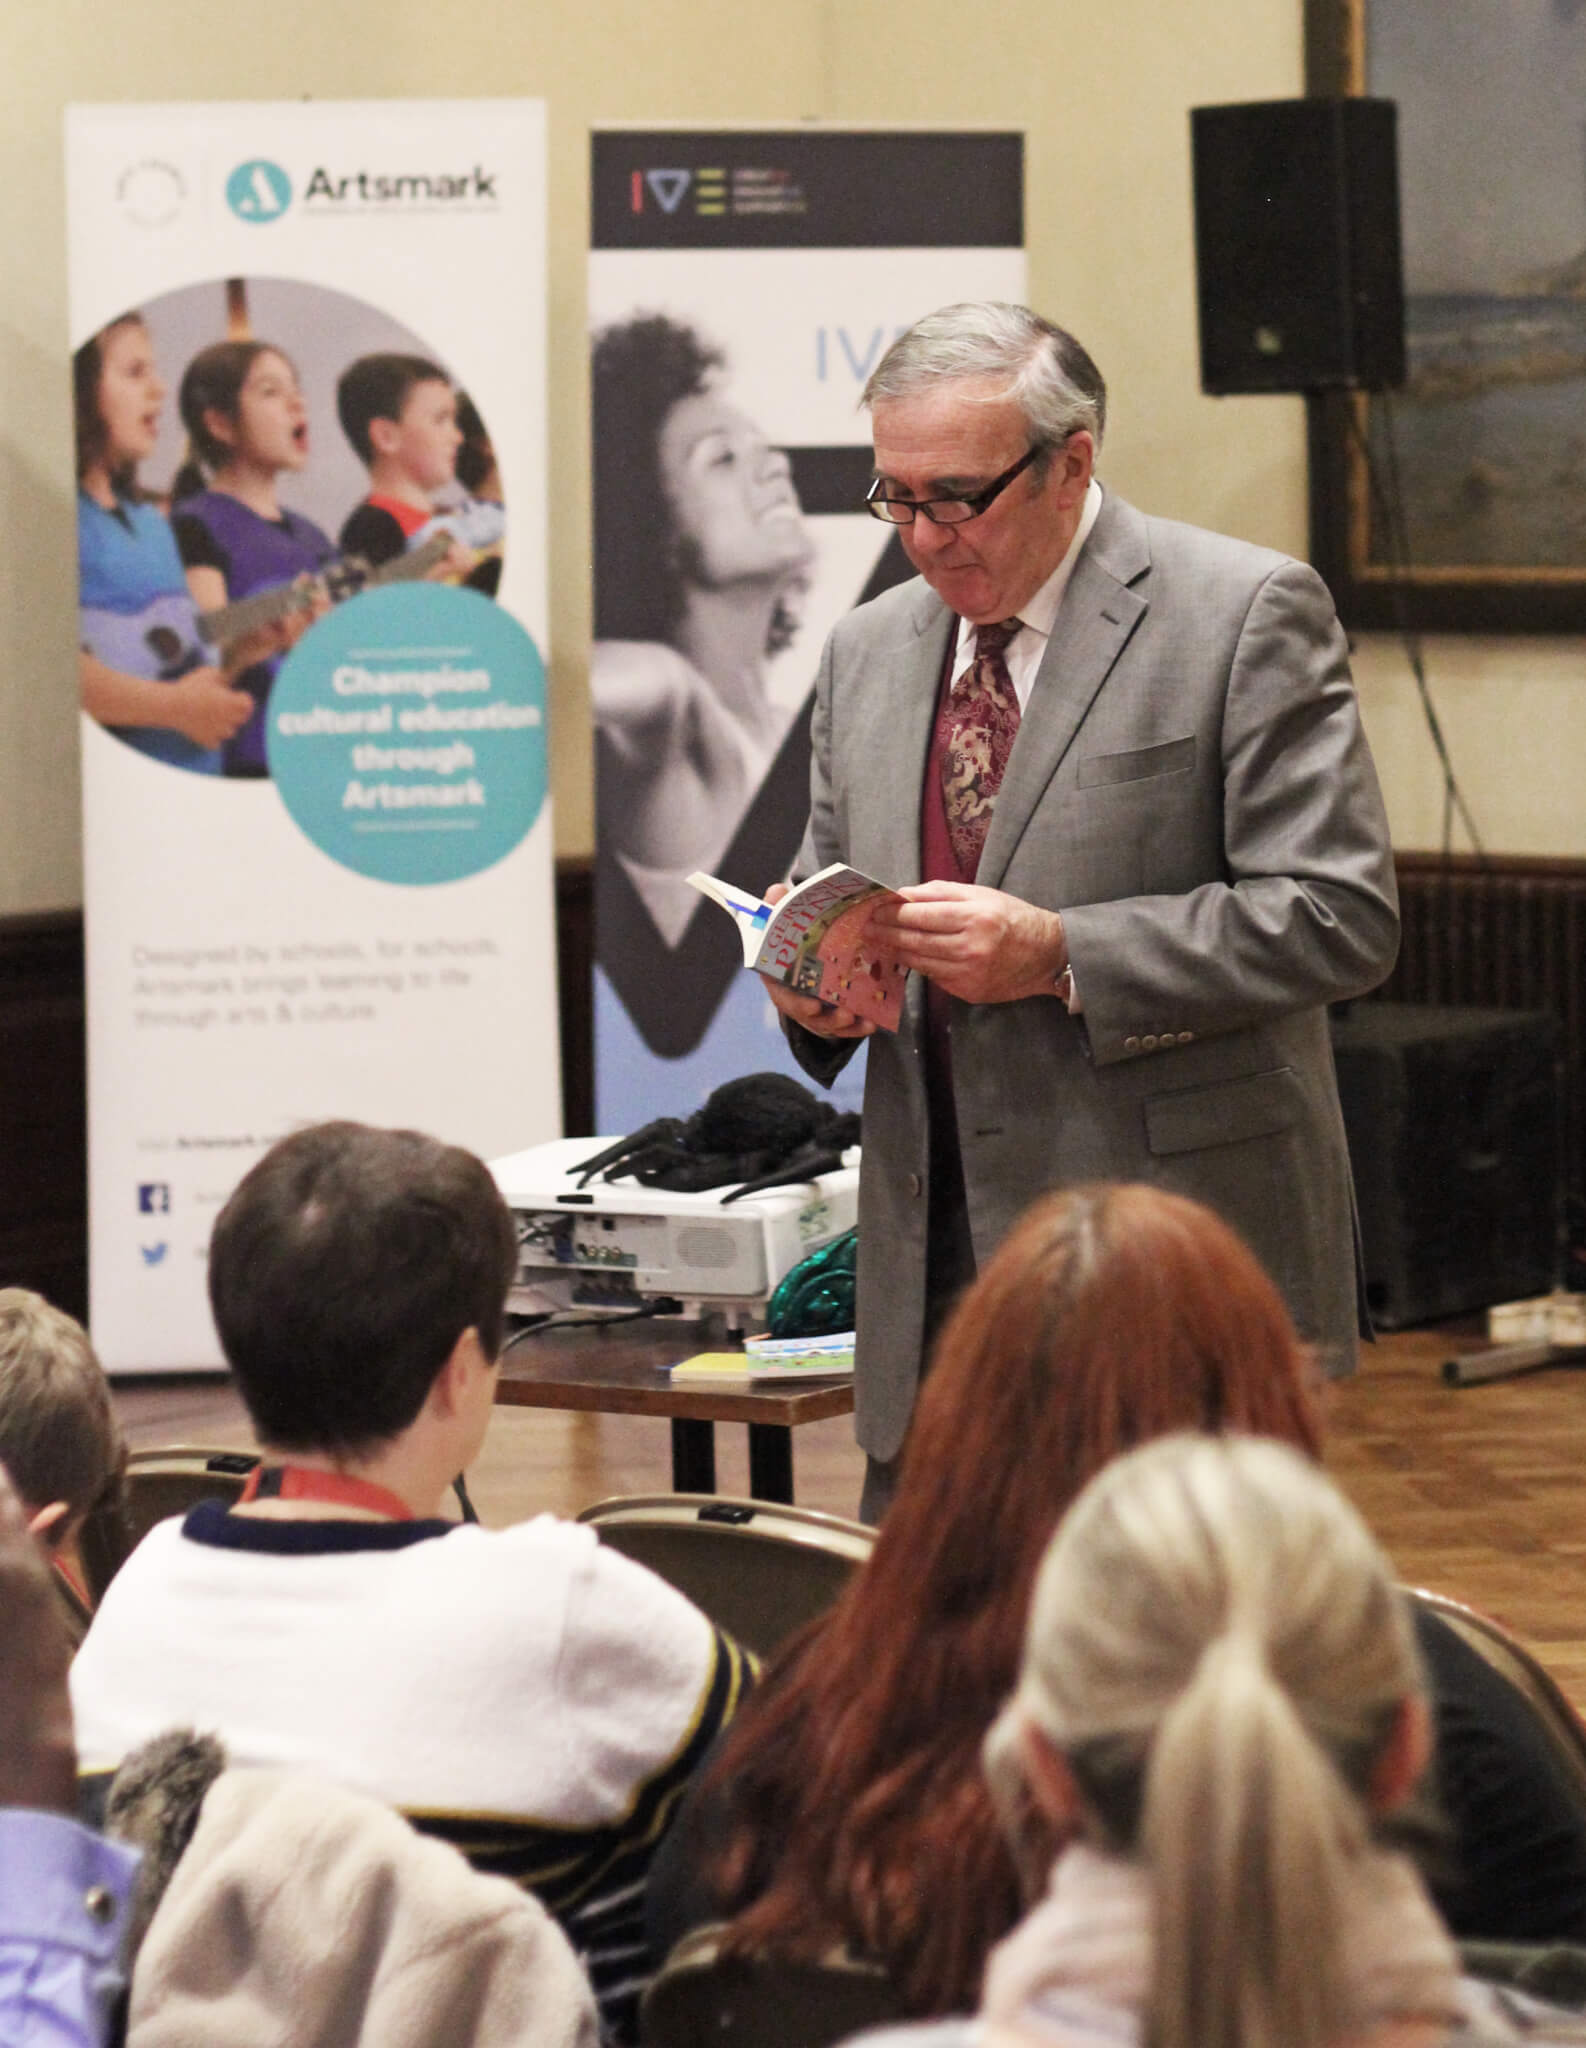 Gervaise Phinn delivering a speech at an Artsmark Celebration event